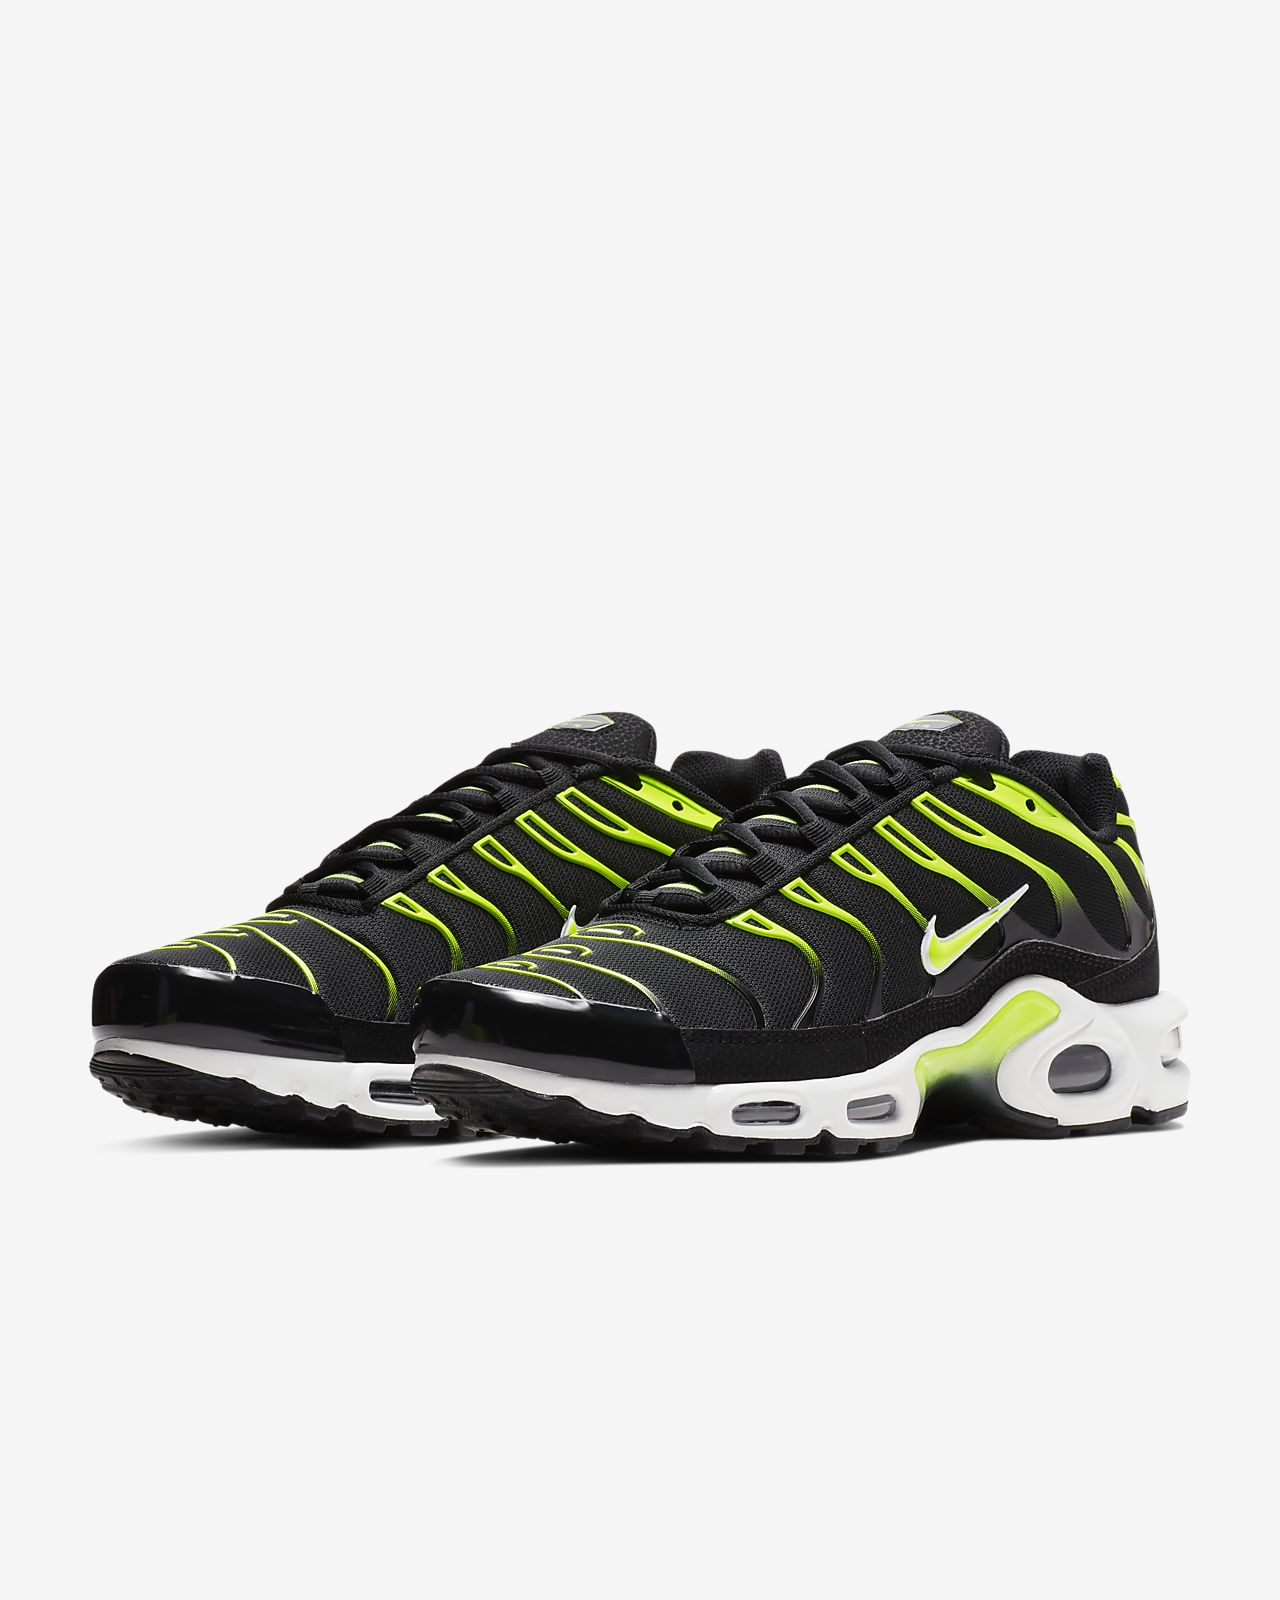 detailed look 2a9a5 6f2b5 ... Nike Air Max Plus Men s Shoe